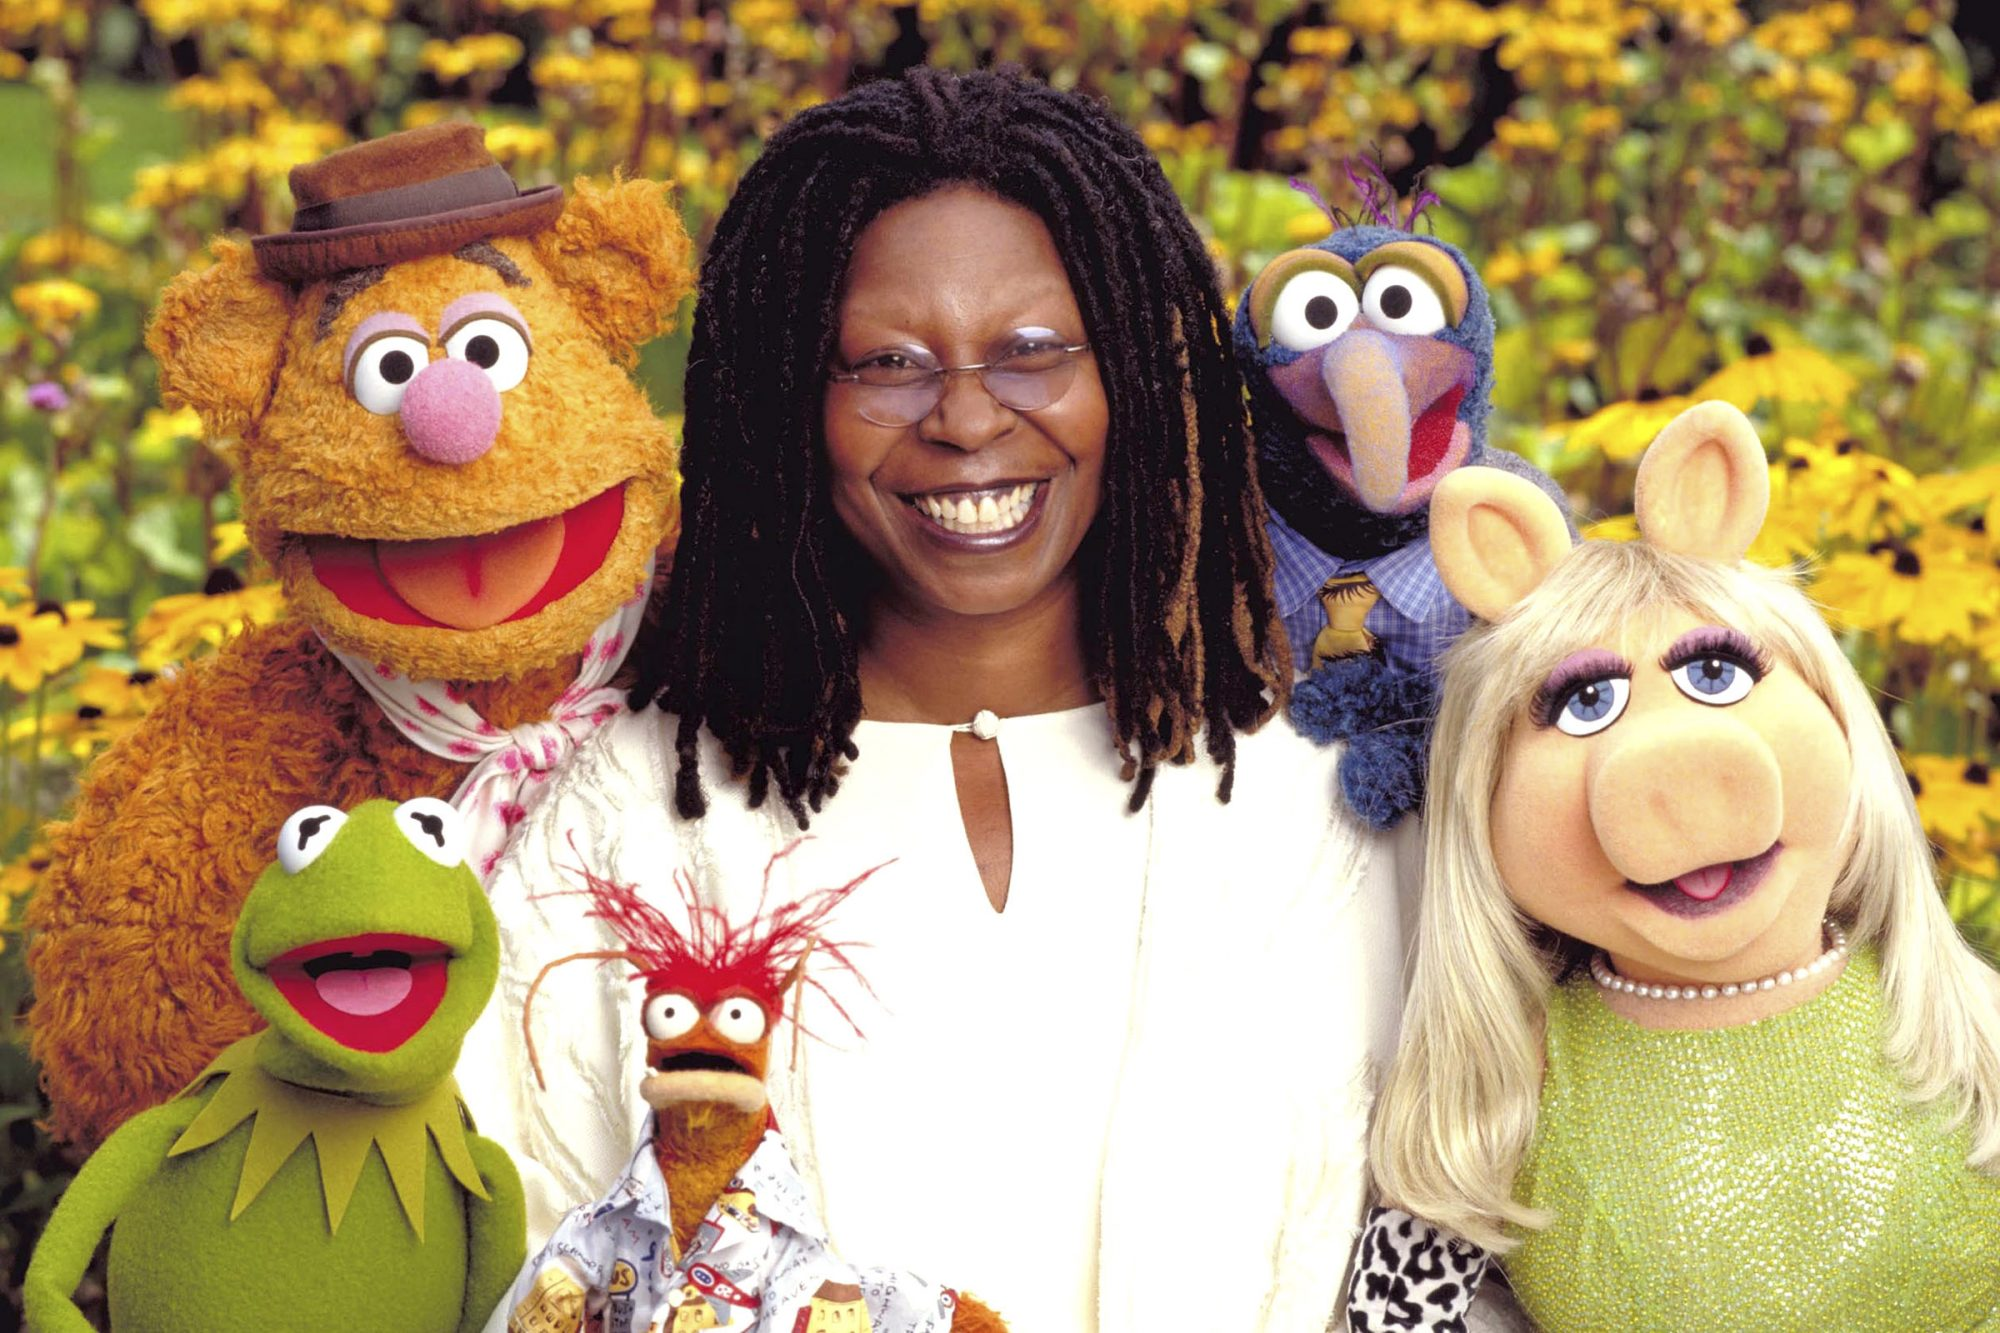 IT'S A VERY MERRY MUPPET CHRISTMAS MOVIE, Pepe the Prawn, Kermit the Frog, Fozzie Bear, Whoopi Goldb